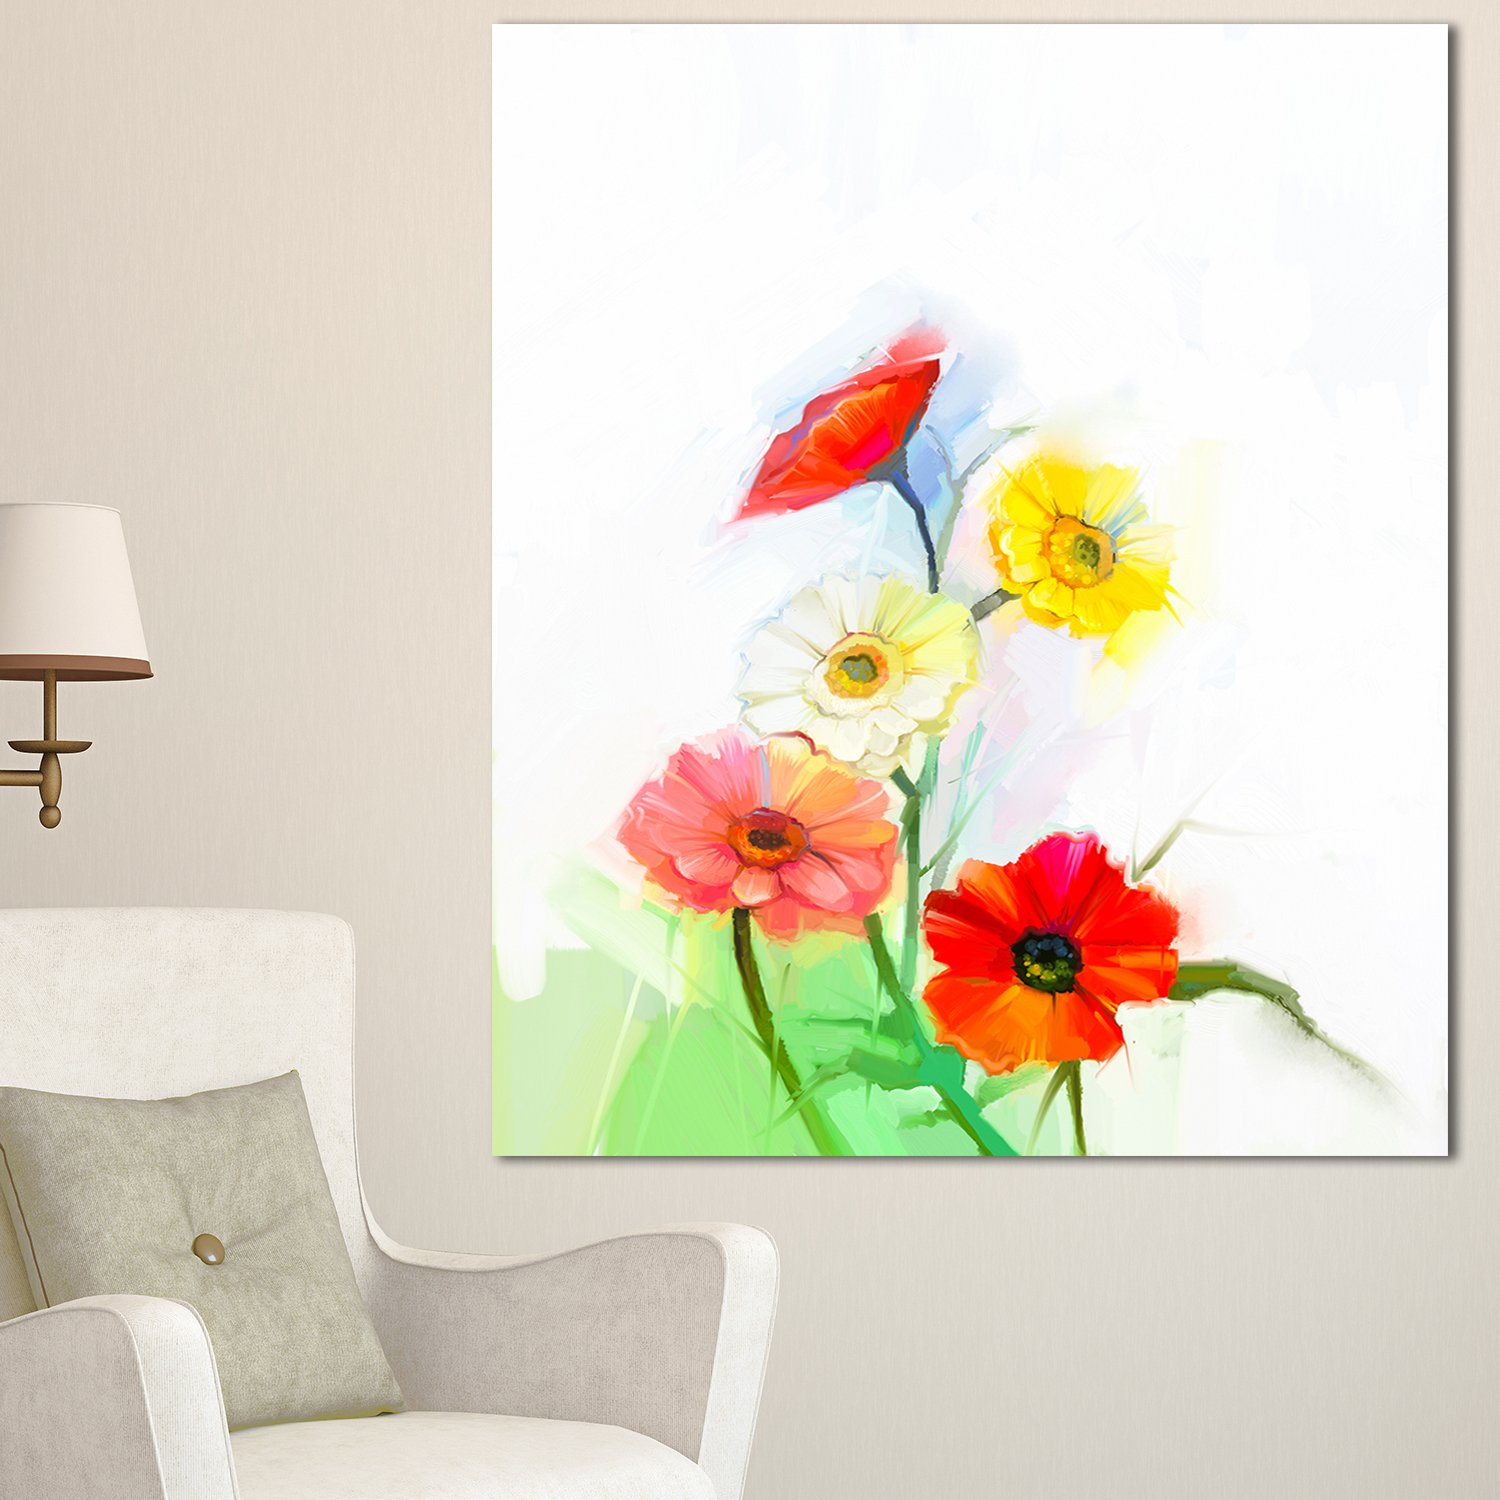 Designart Mt15023 271v Still Life Colored Gerbera Flowers Modern Floral Glossy Metal Wall Art Red 28x48 Amazon In Home Kitchen